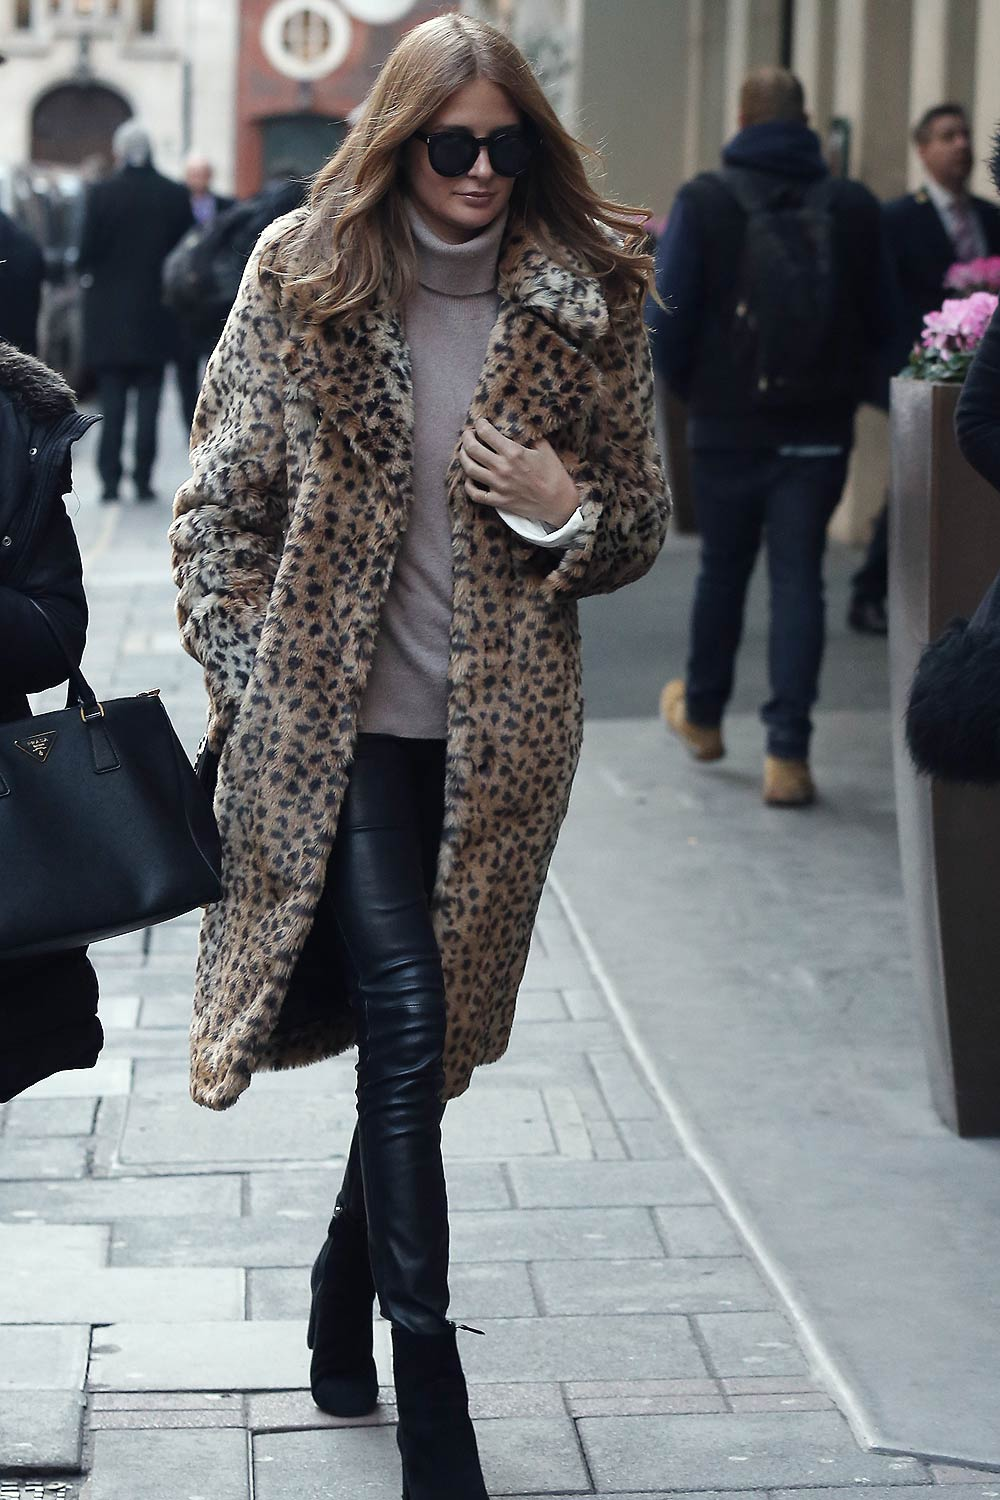 Millie Mackintosh seen leaving the May Fair Hotel